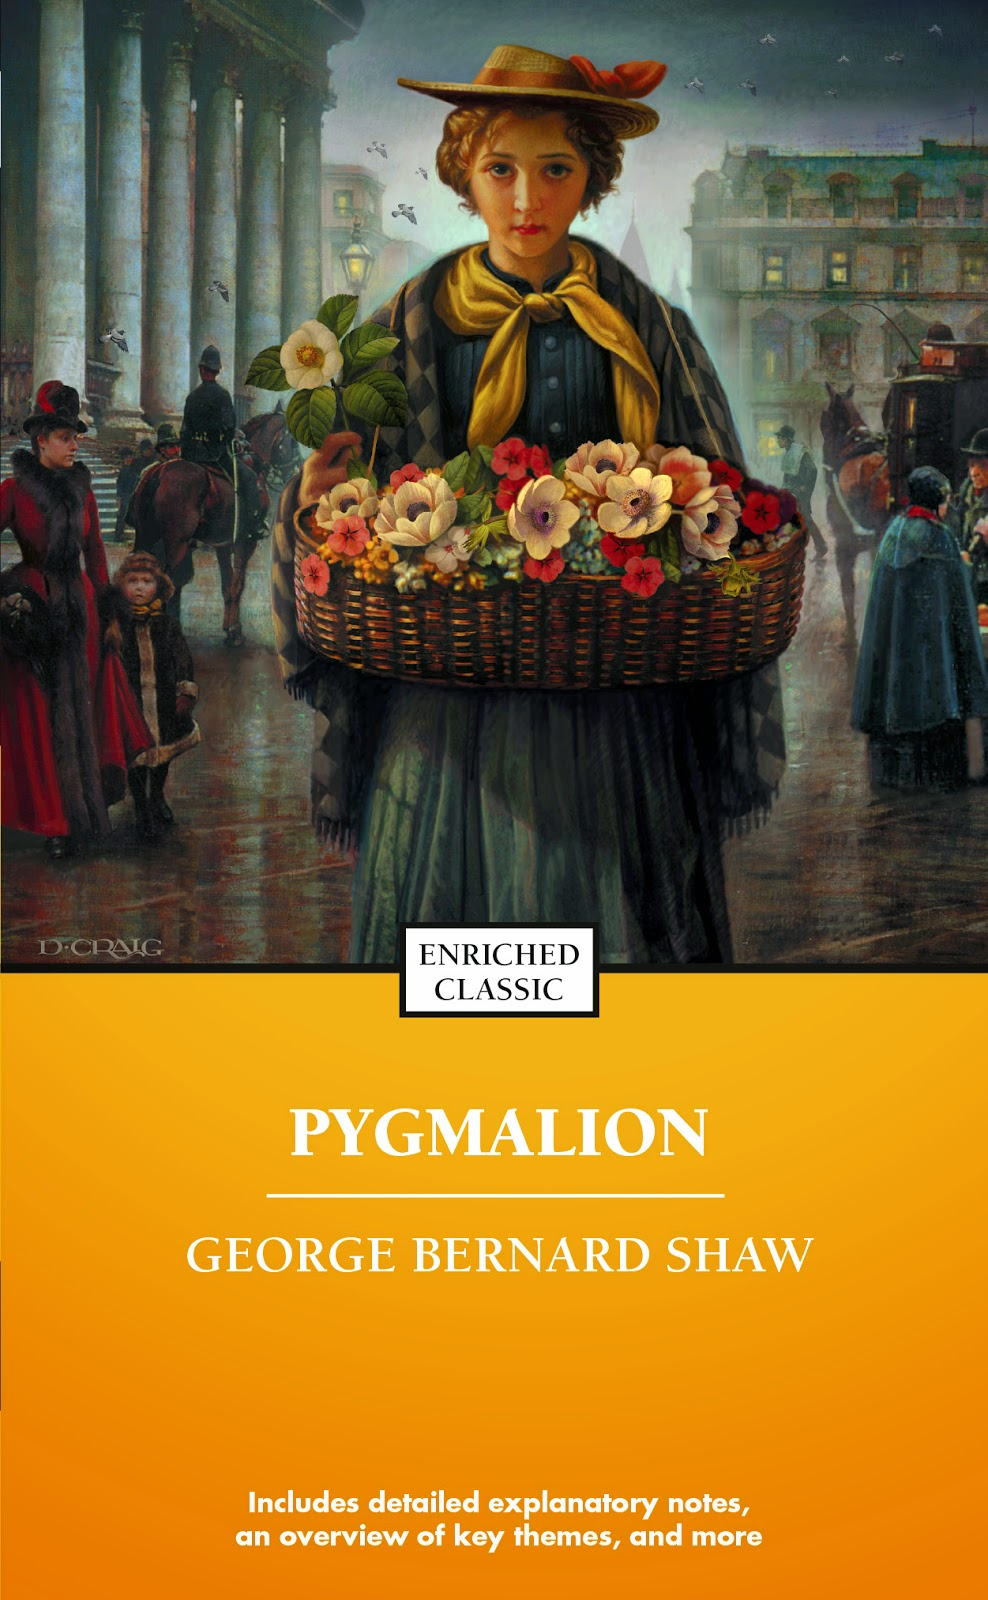 feed aggregator casey cardinia libraries pyg on a play by george bernard shaw